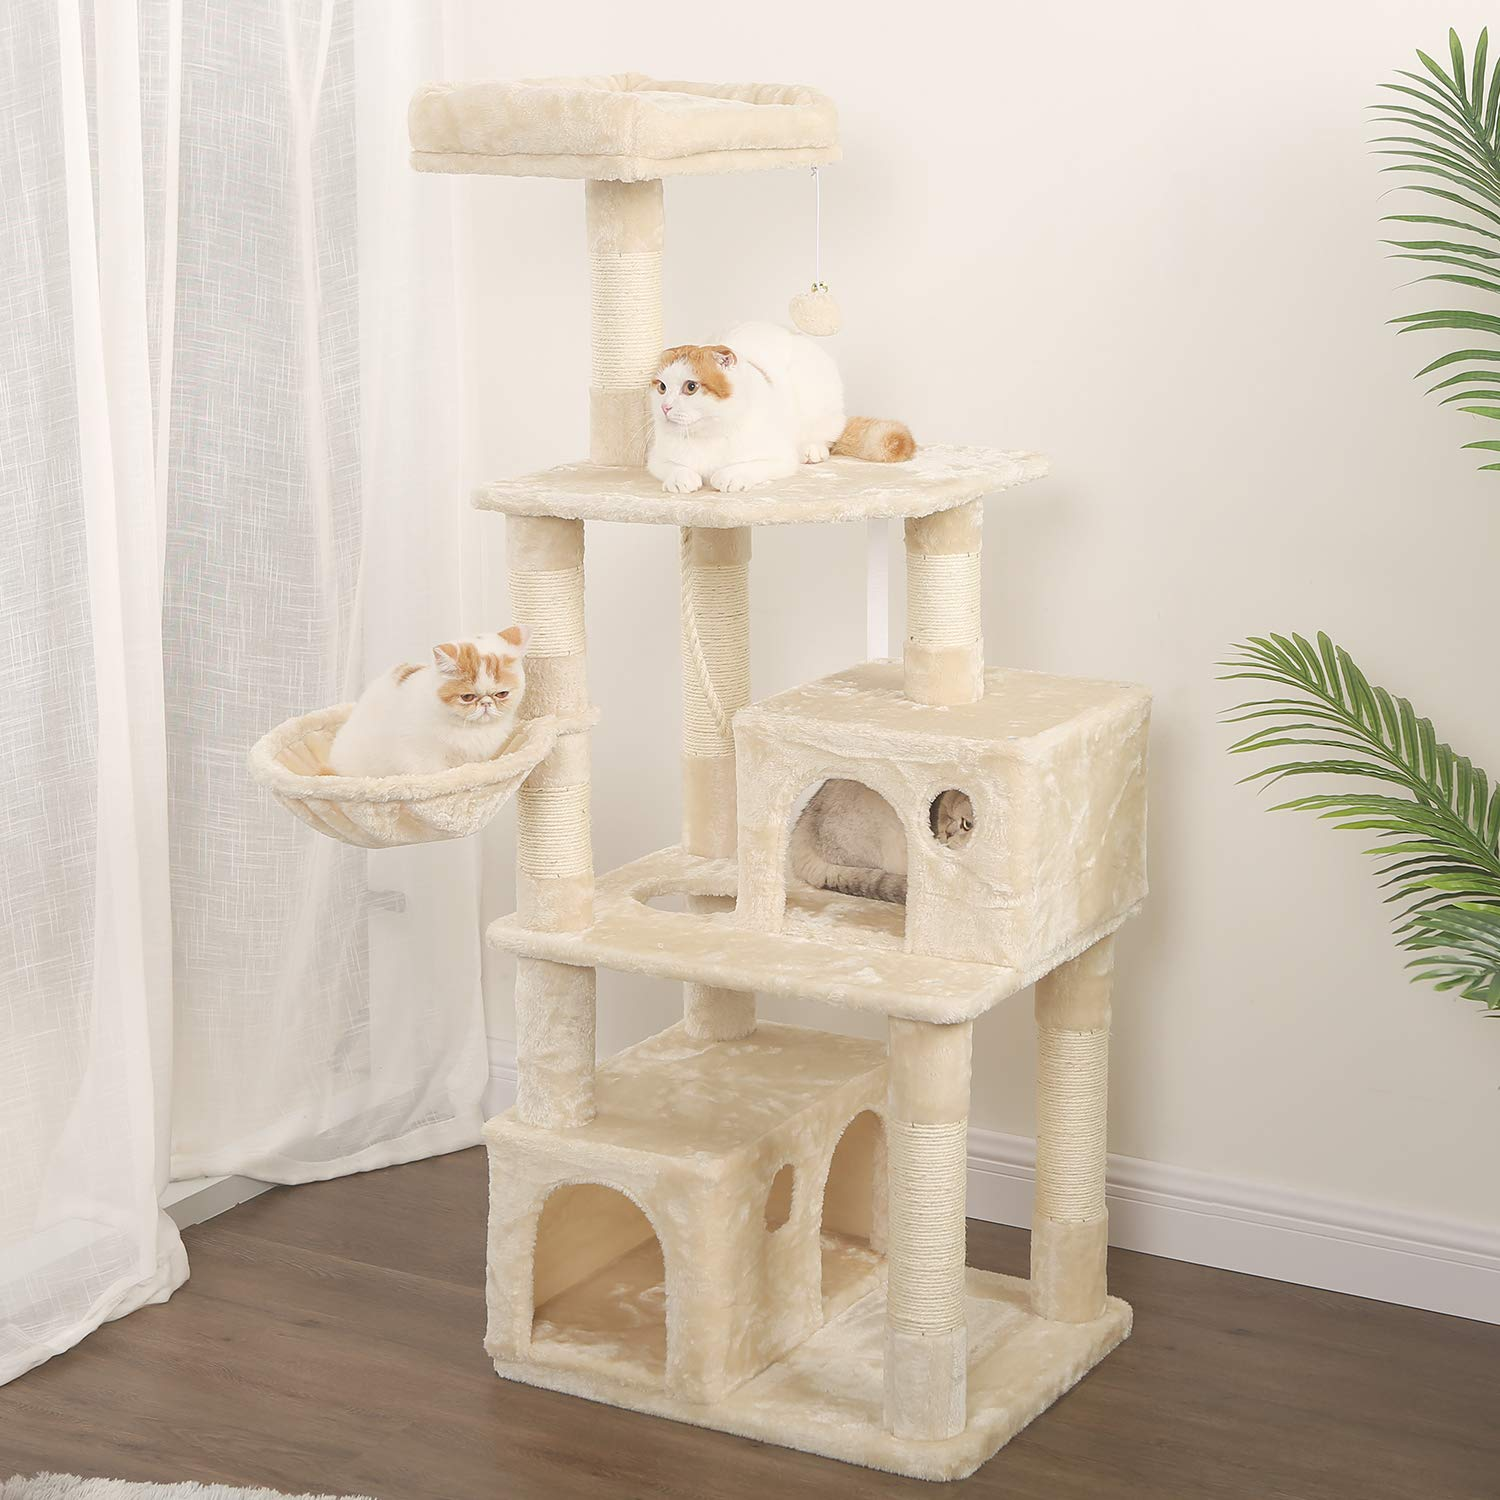 WLIVE 59'' Large Cat Tree Condo with Sisal Scratching Posts, 2 Plush Condos and Basket Lounger, Cat Tower Furniture WF062A by WLIVE (Image #7)